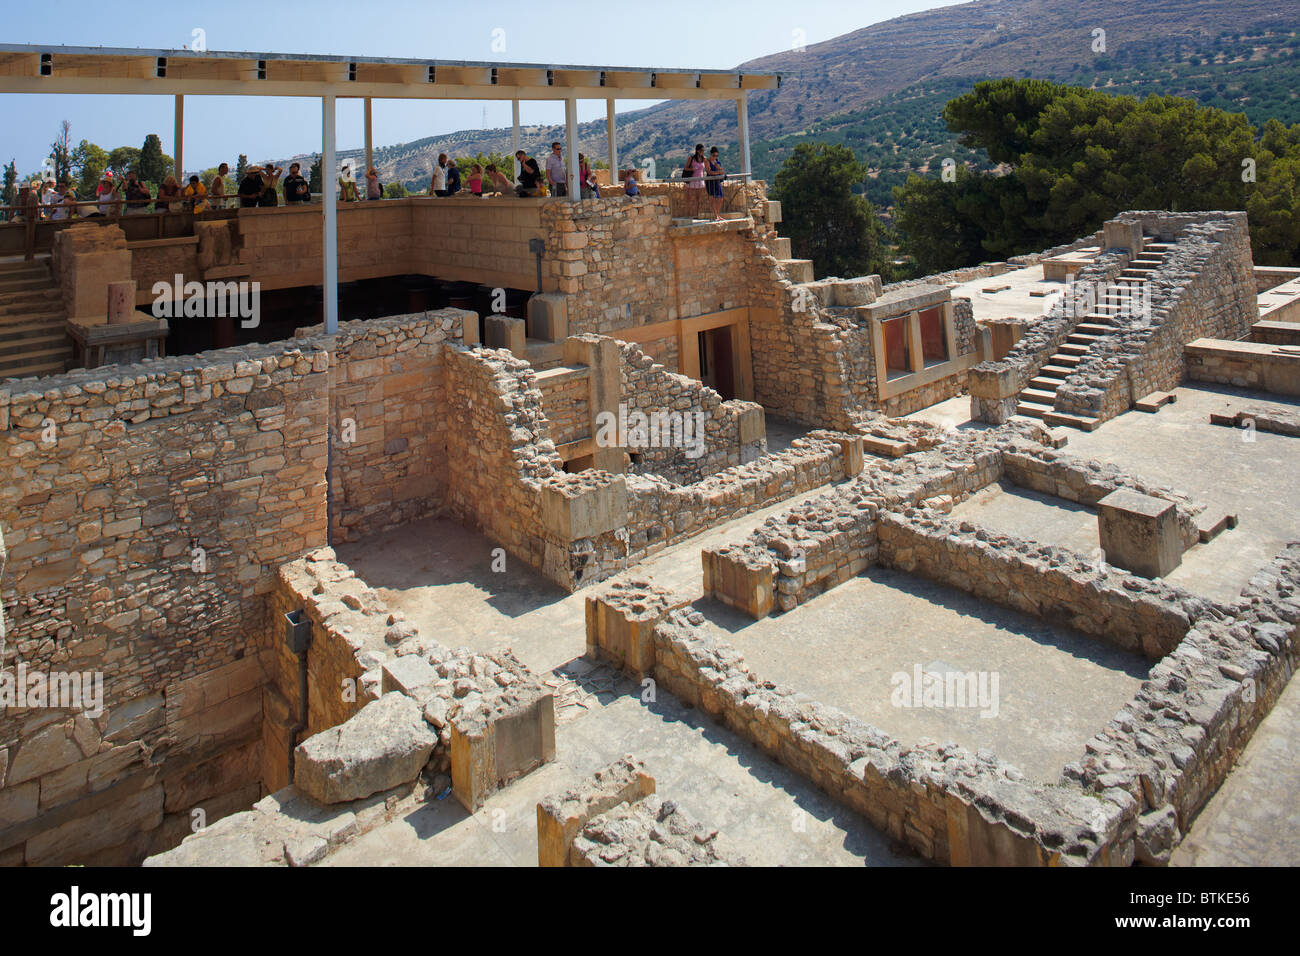 Elevated view of the ruined Knossos Palace. Crete island, Greece. - Stock Image